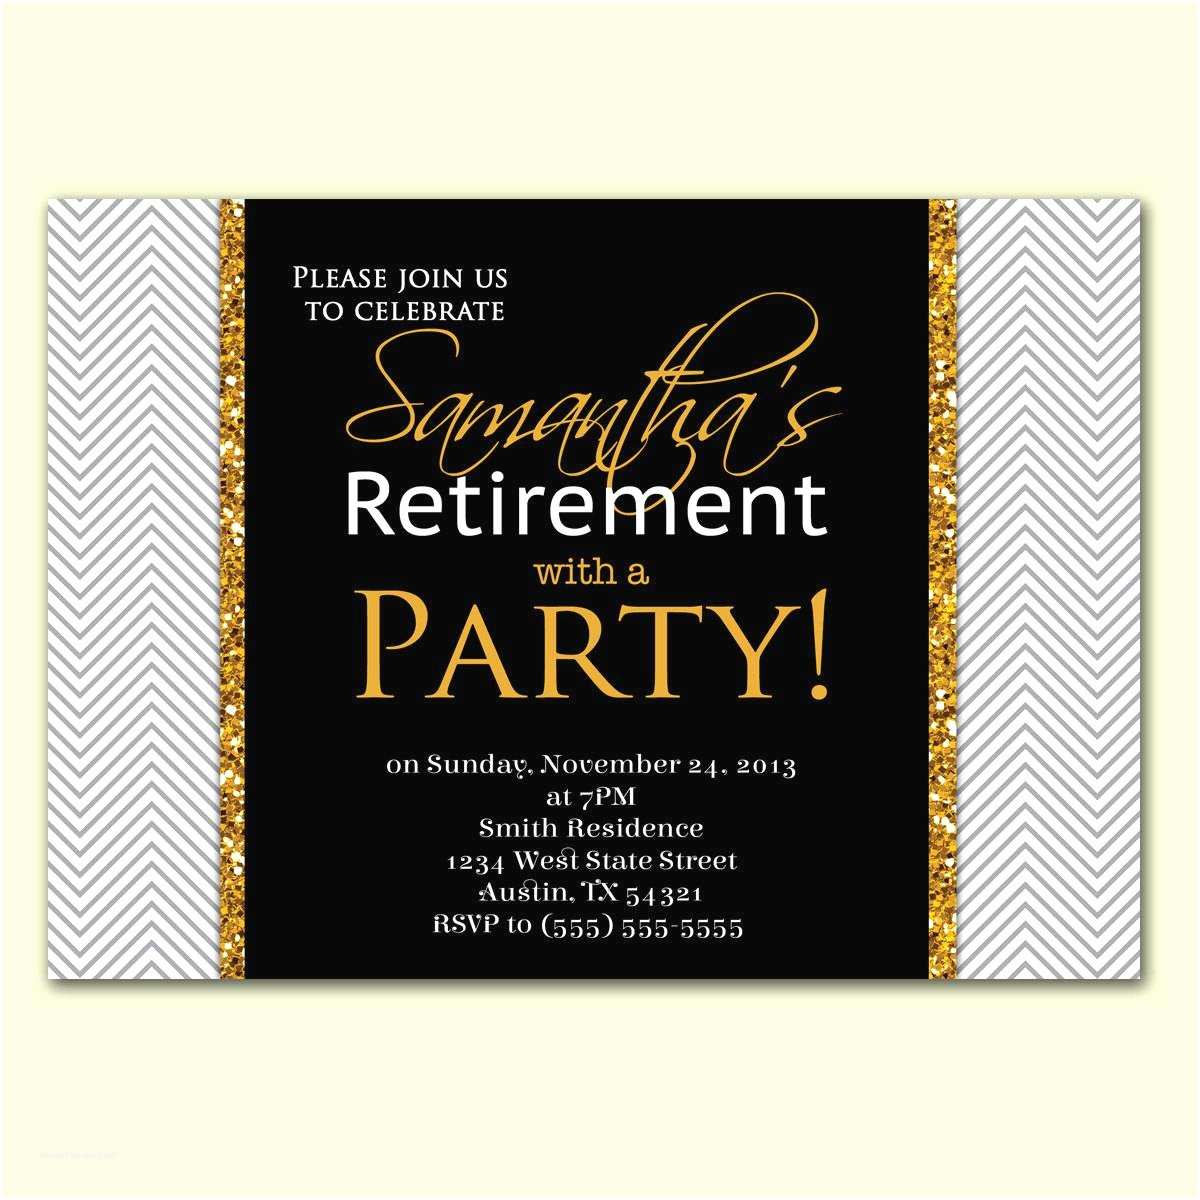 Retirement Party Invitations Retirement Party Invitation Template